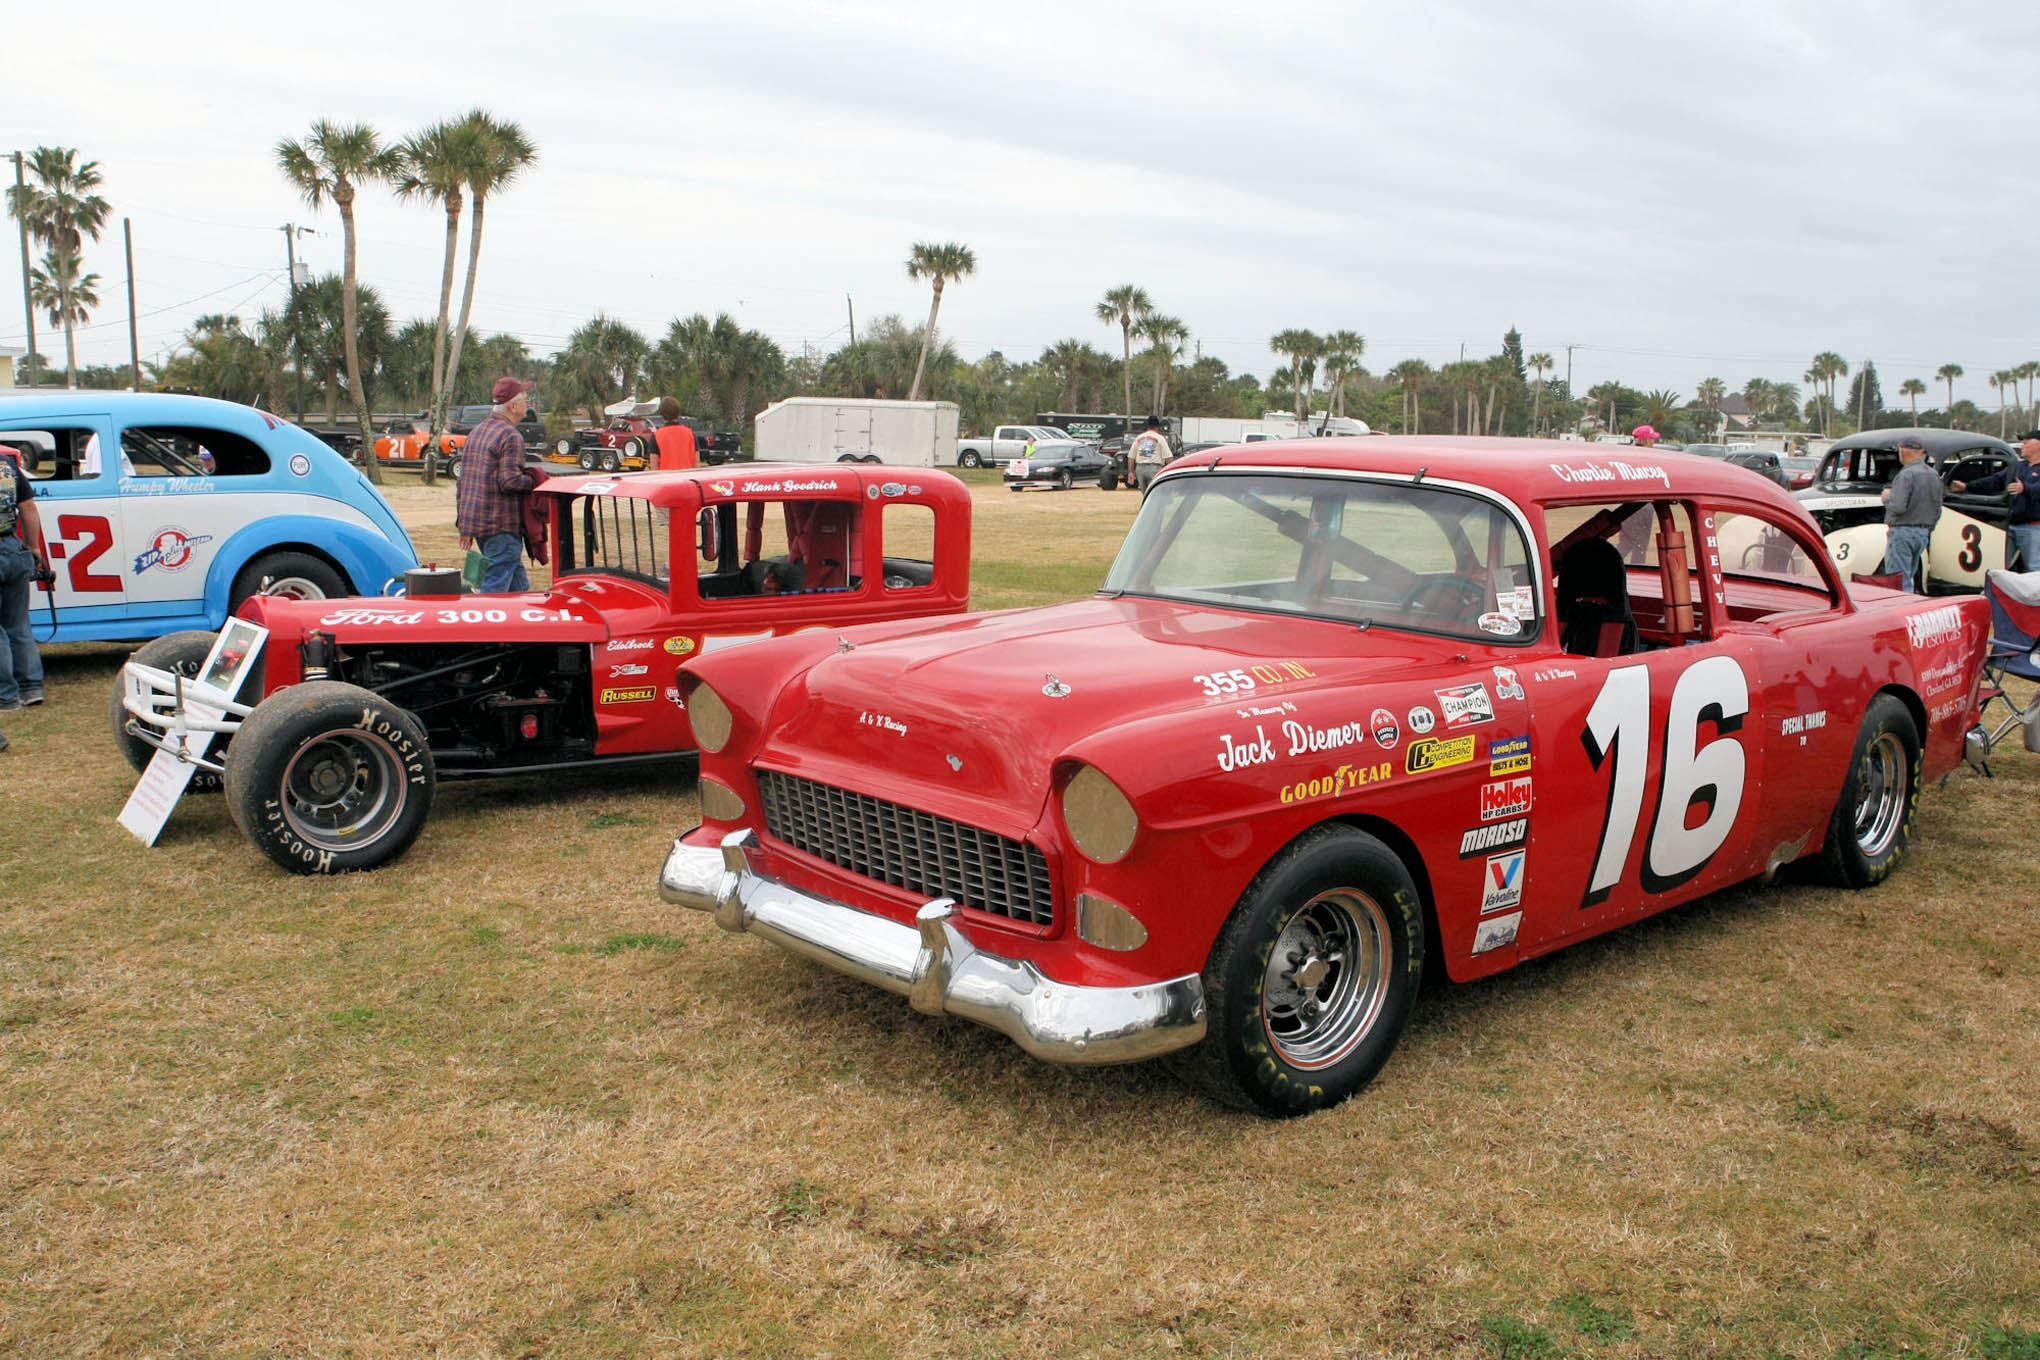 Stock Cars and Jalopies all on display for the viewing pleasure of the many Florida ascending race fans the second week of February.